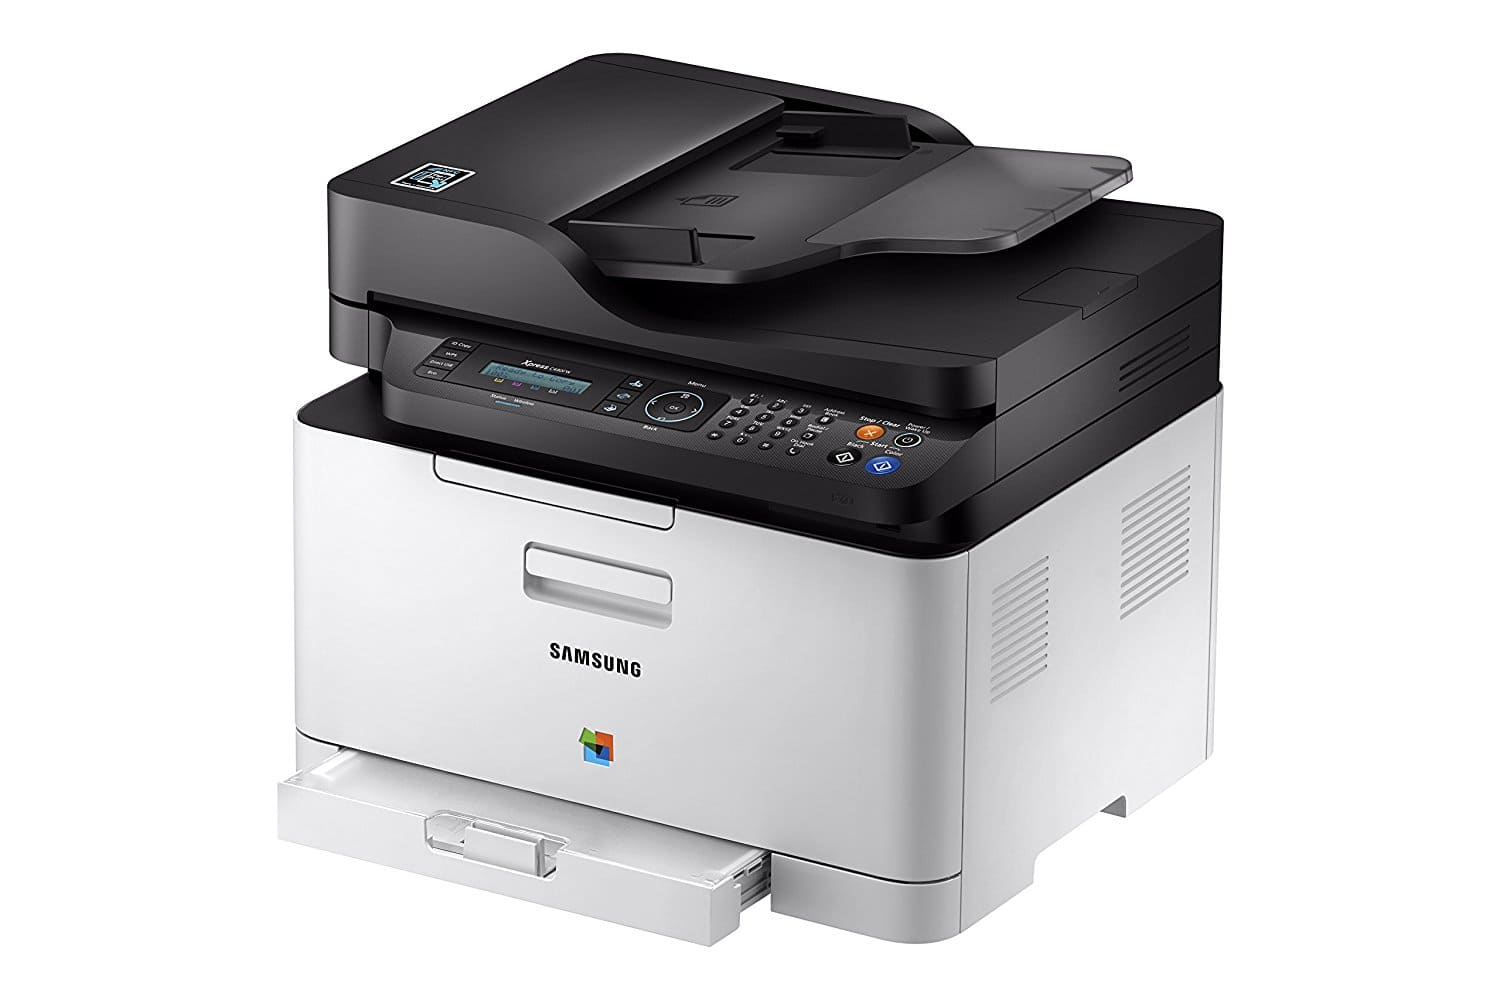 Samsung Printer Xpress C480fw